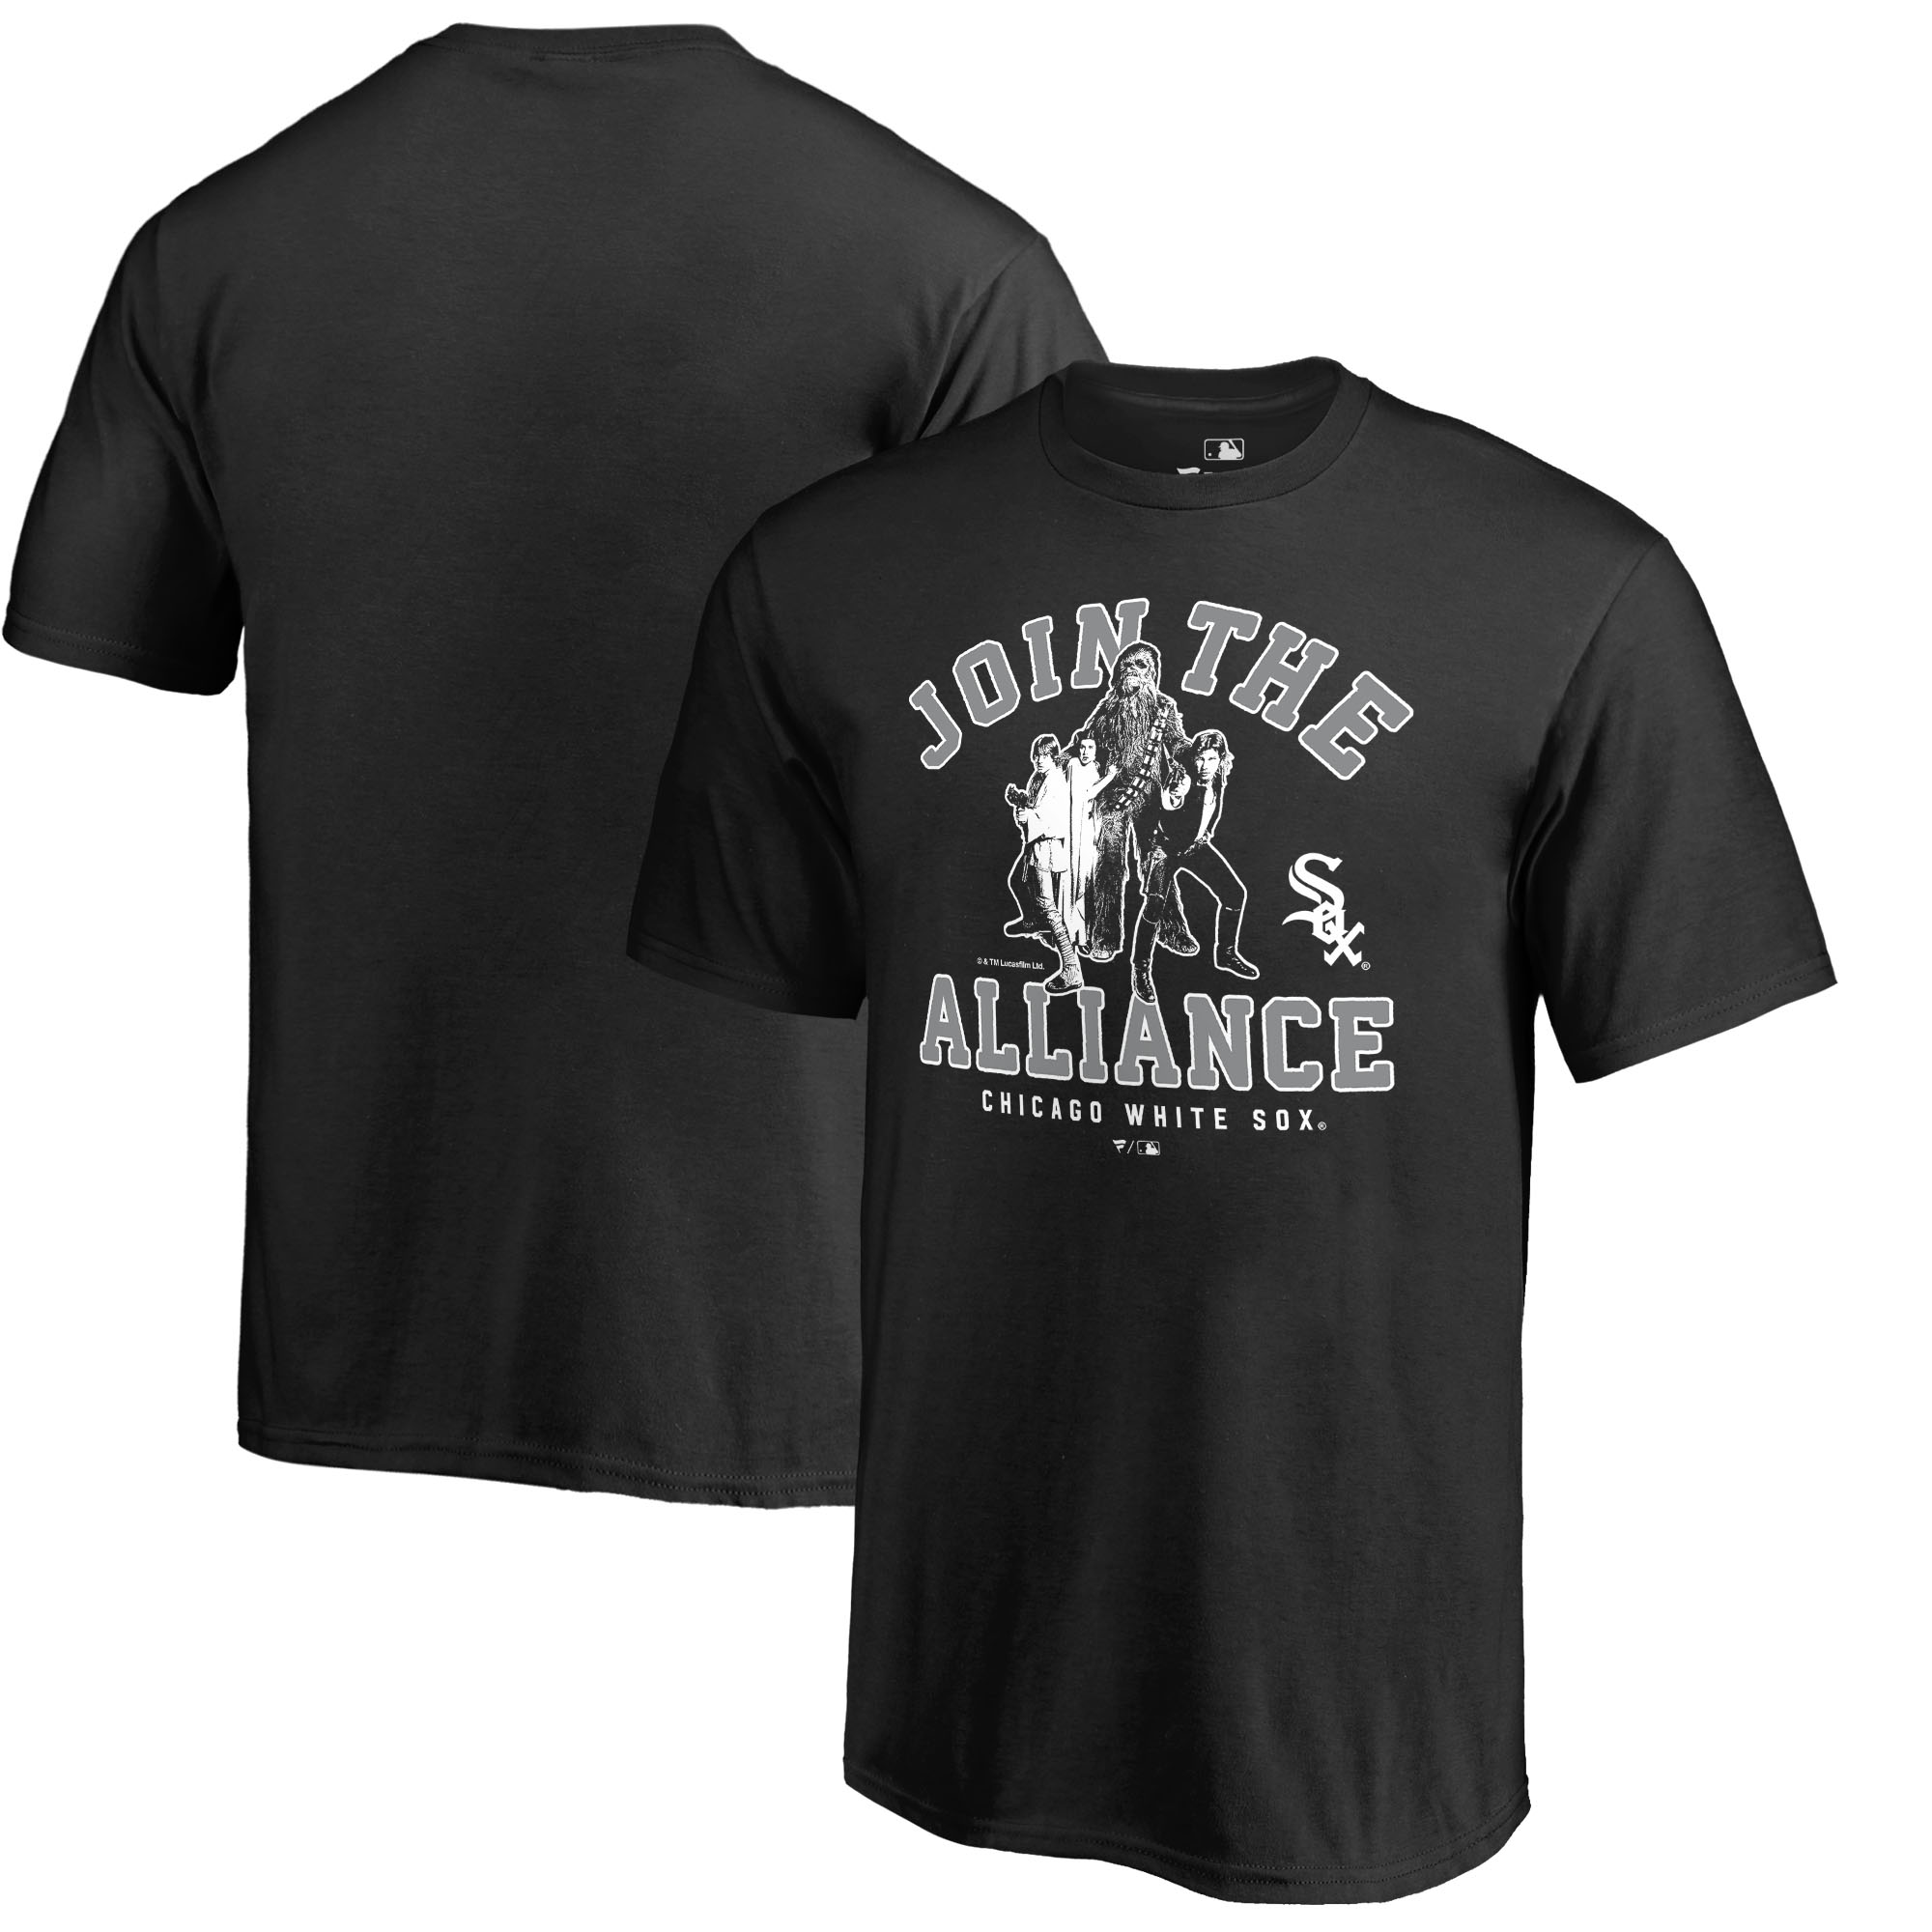 Chicago White Sox Fanatics Branded Youth MLB Star Wars Join The Alliance T-Shirt - Black